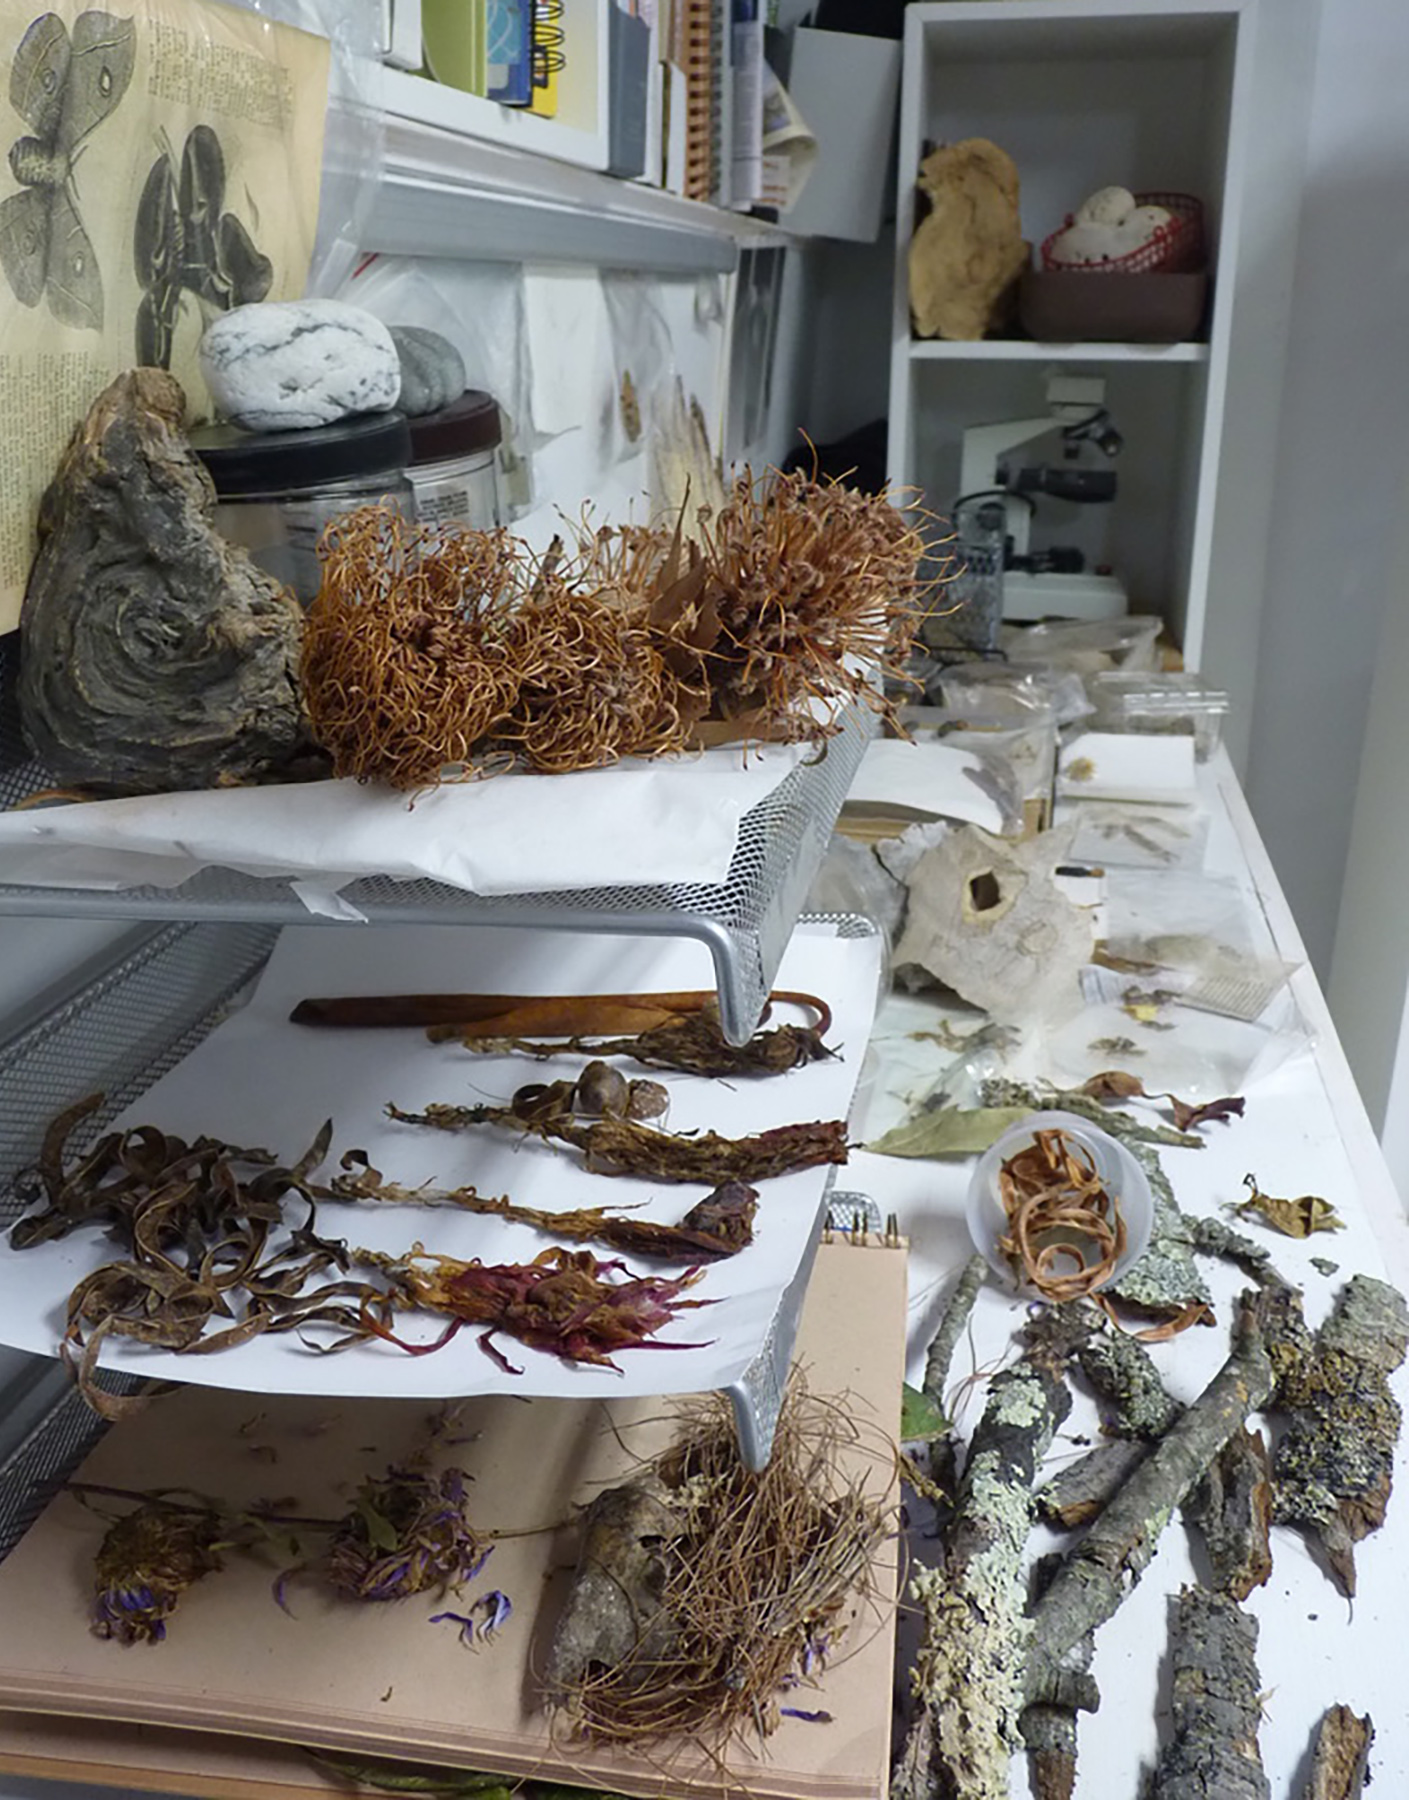 A selection of Neill's collection of natural images in her studio